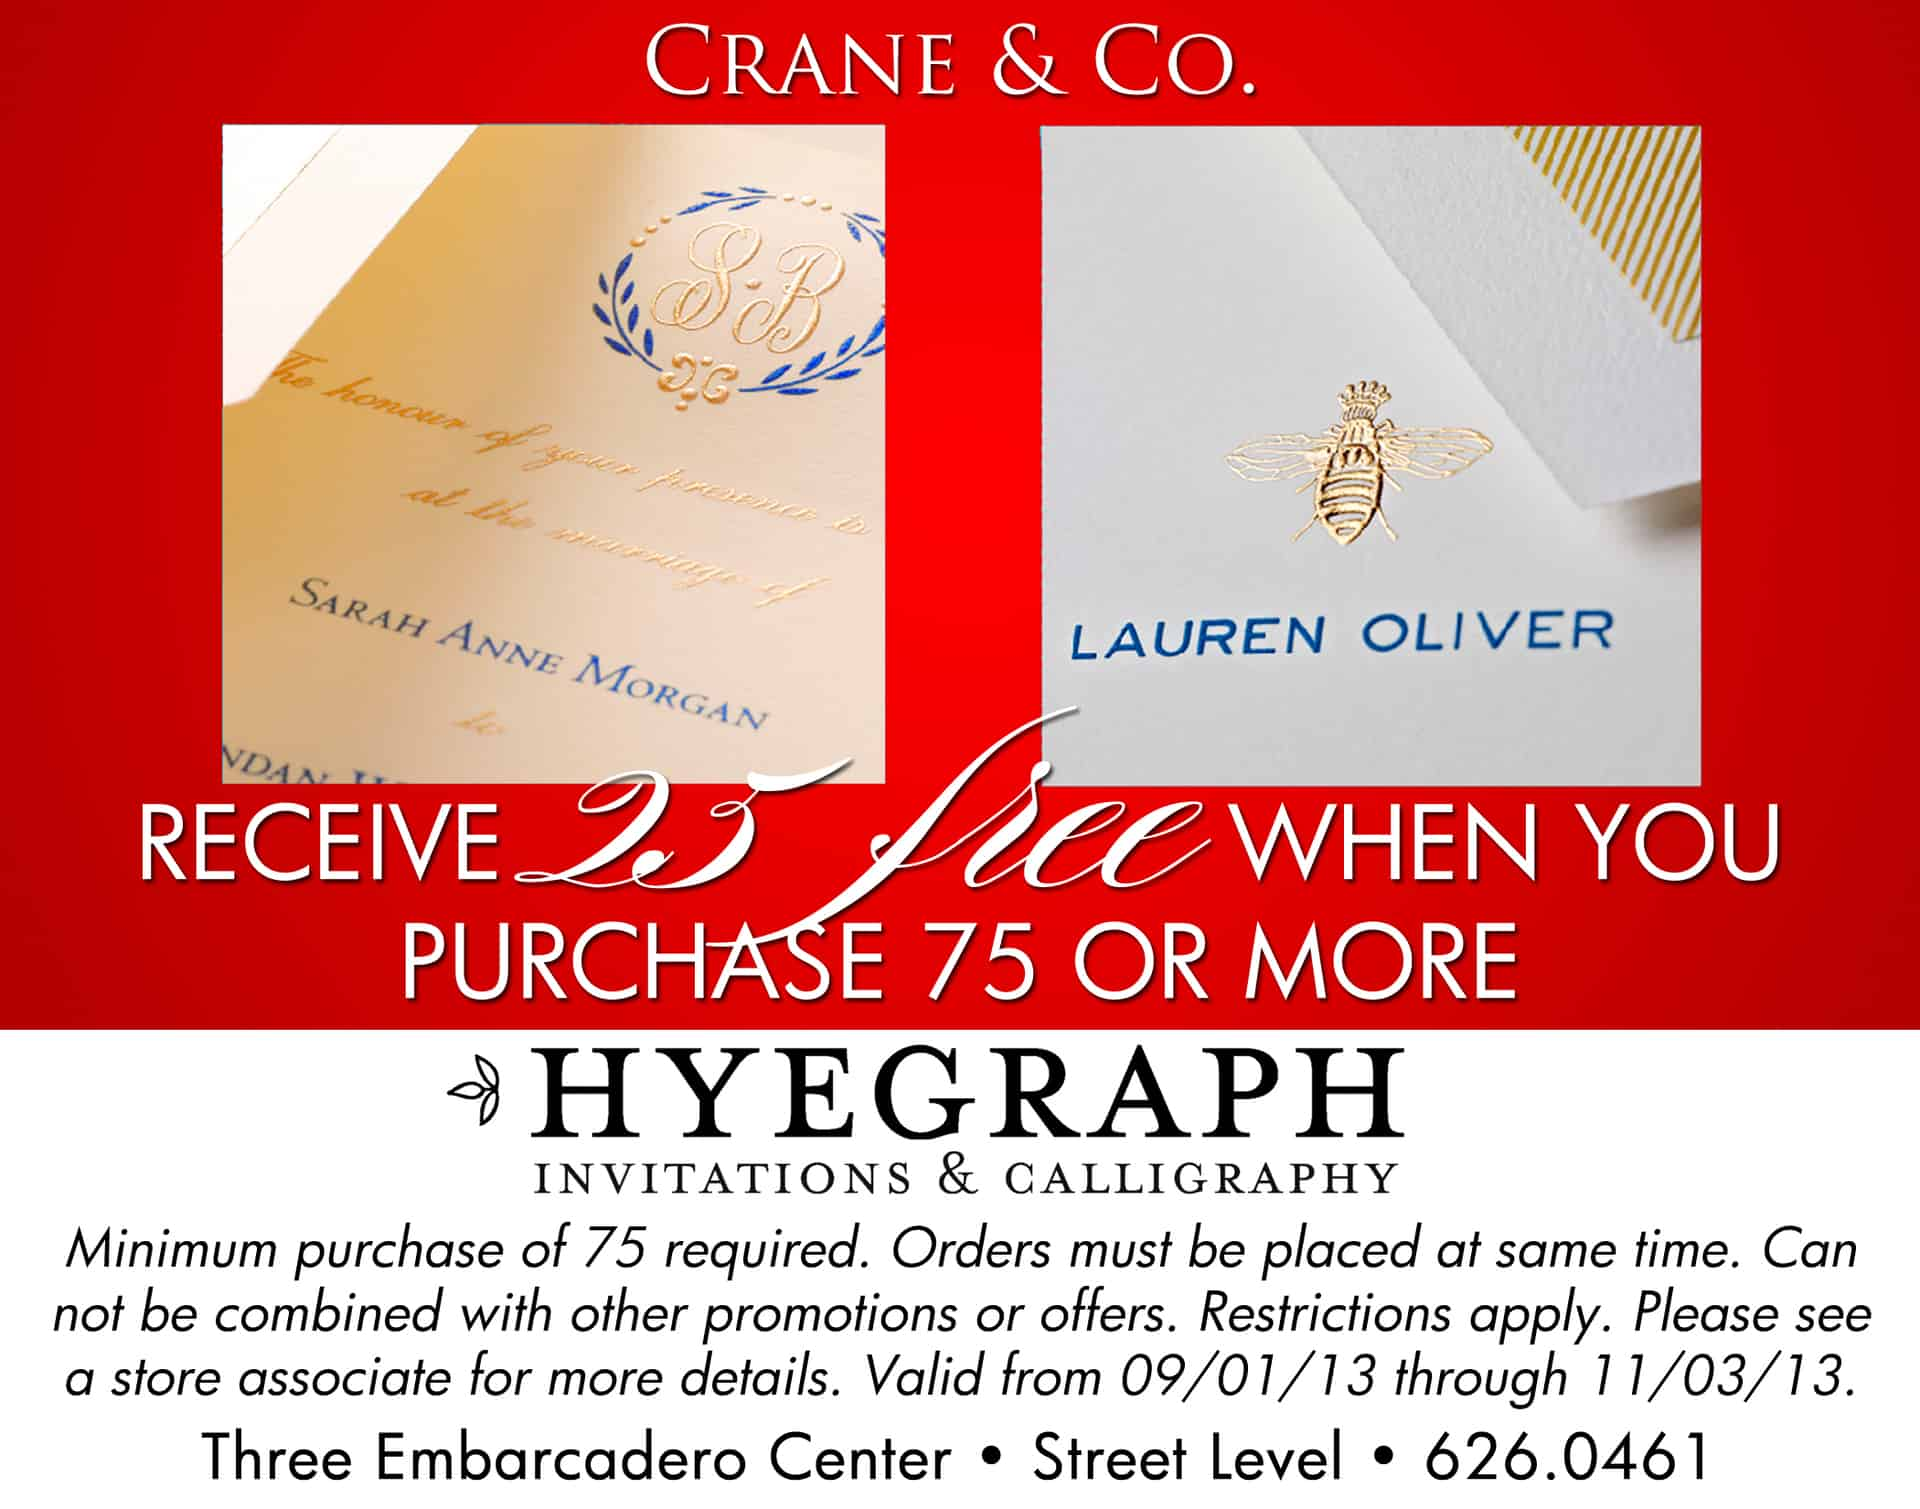 Wedding Invitations Archives - Page 4 of 8 - Hyegraph Invitations ...